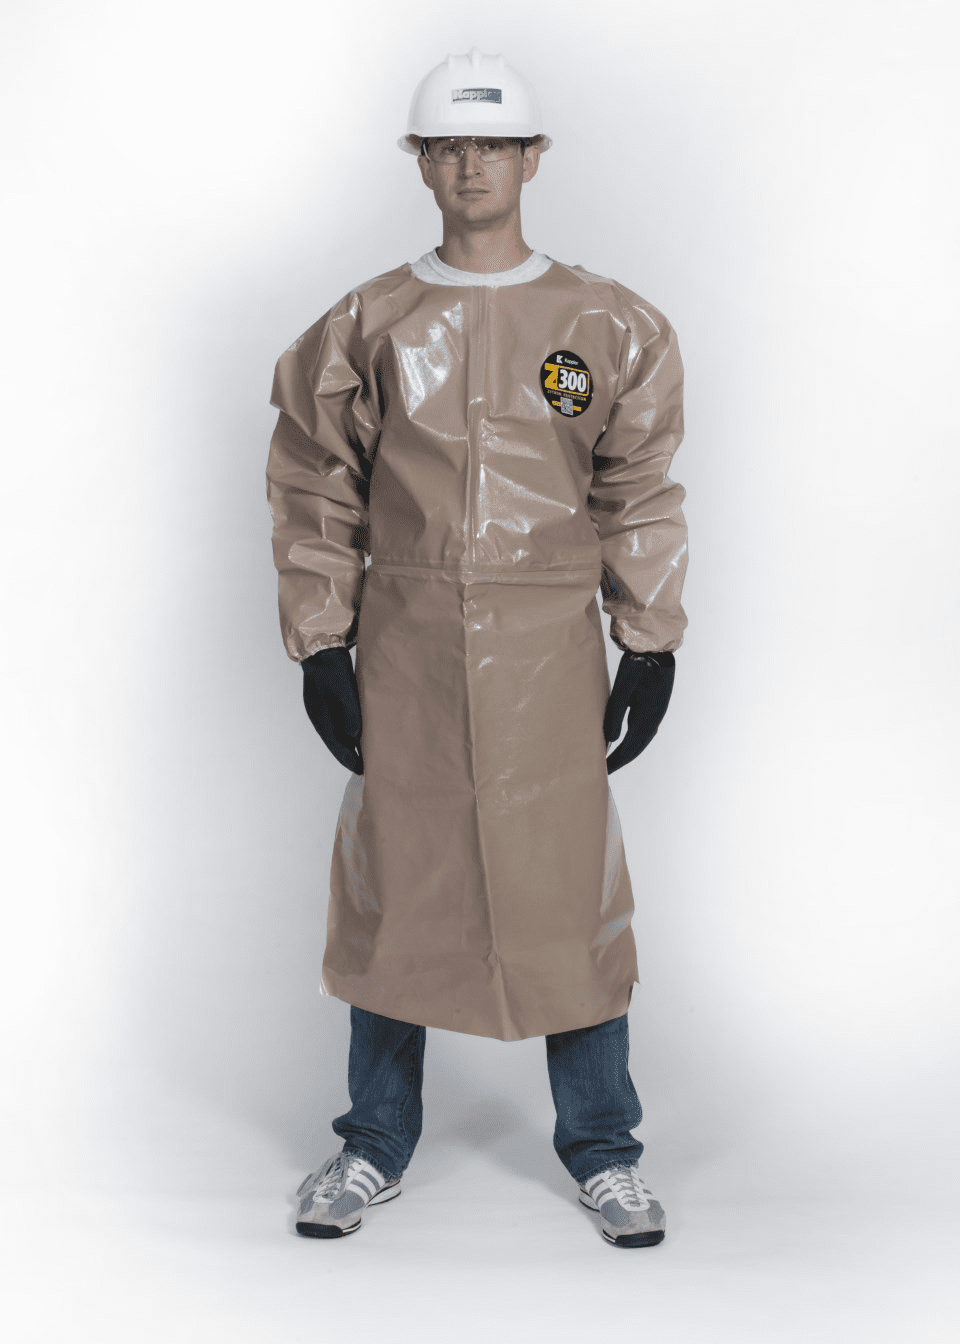 Kappler� Zytron� Z300 Jacket